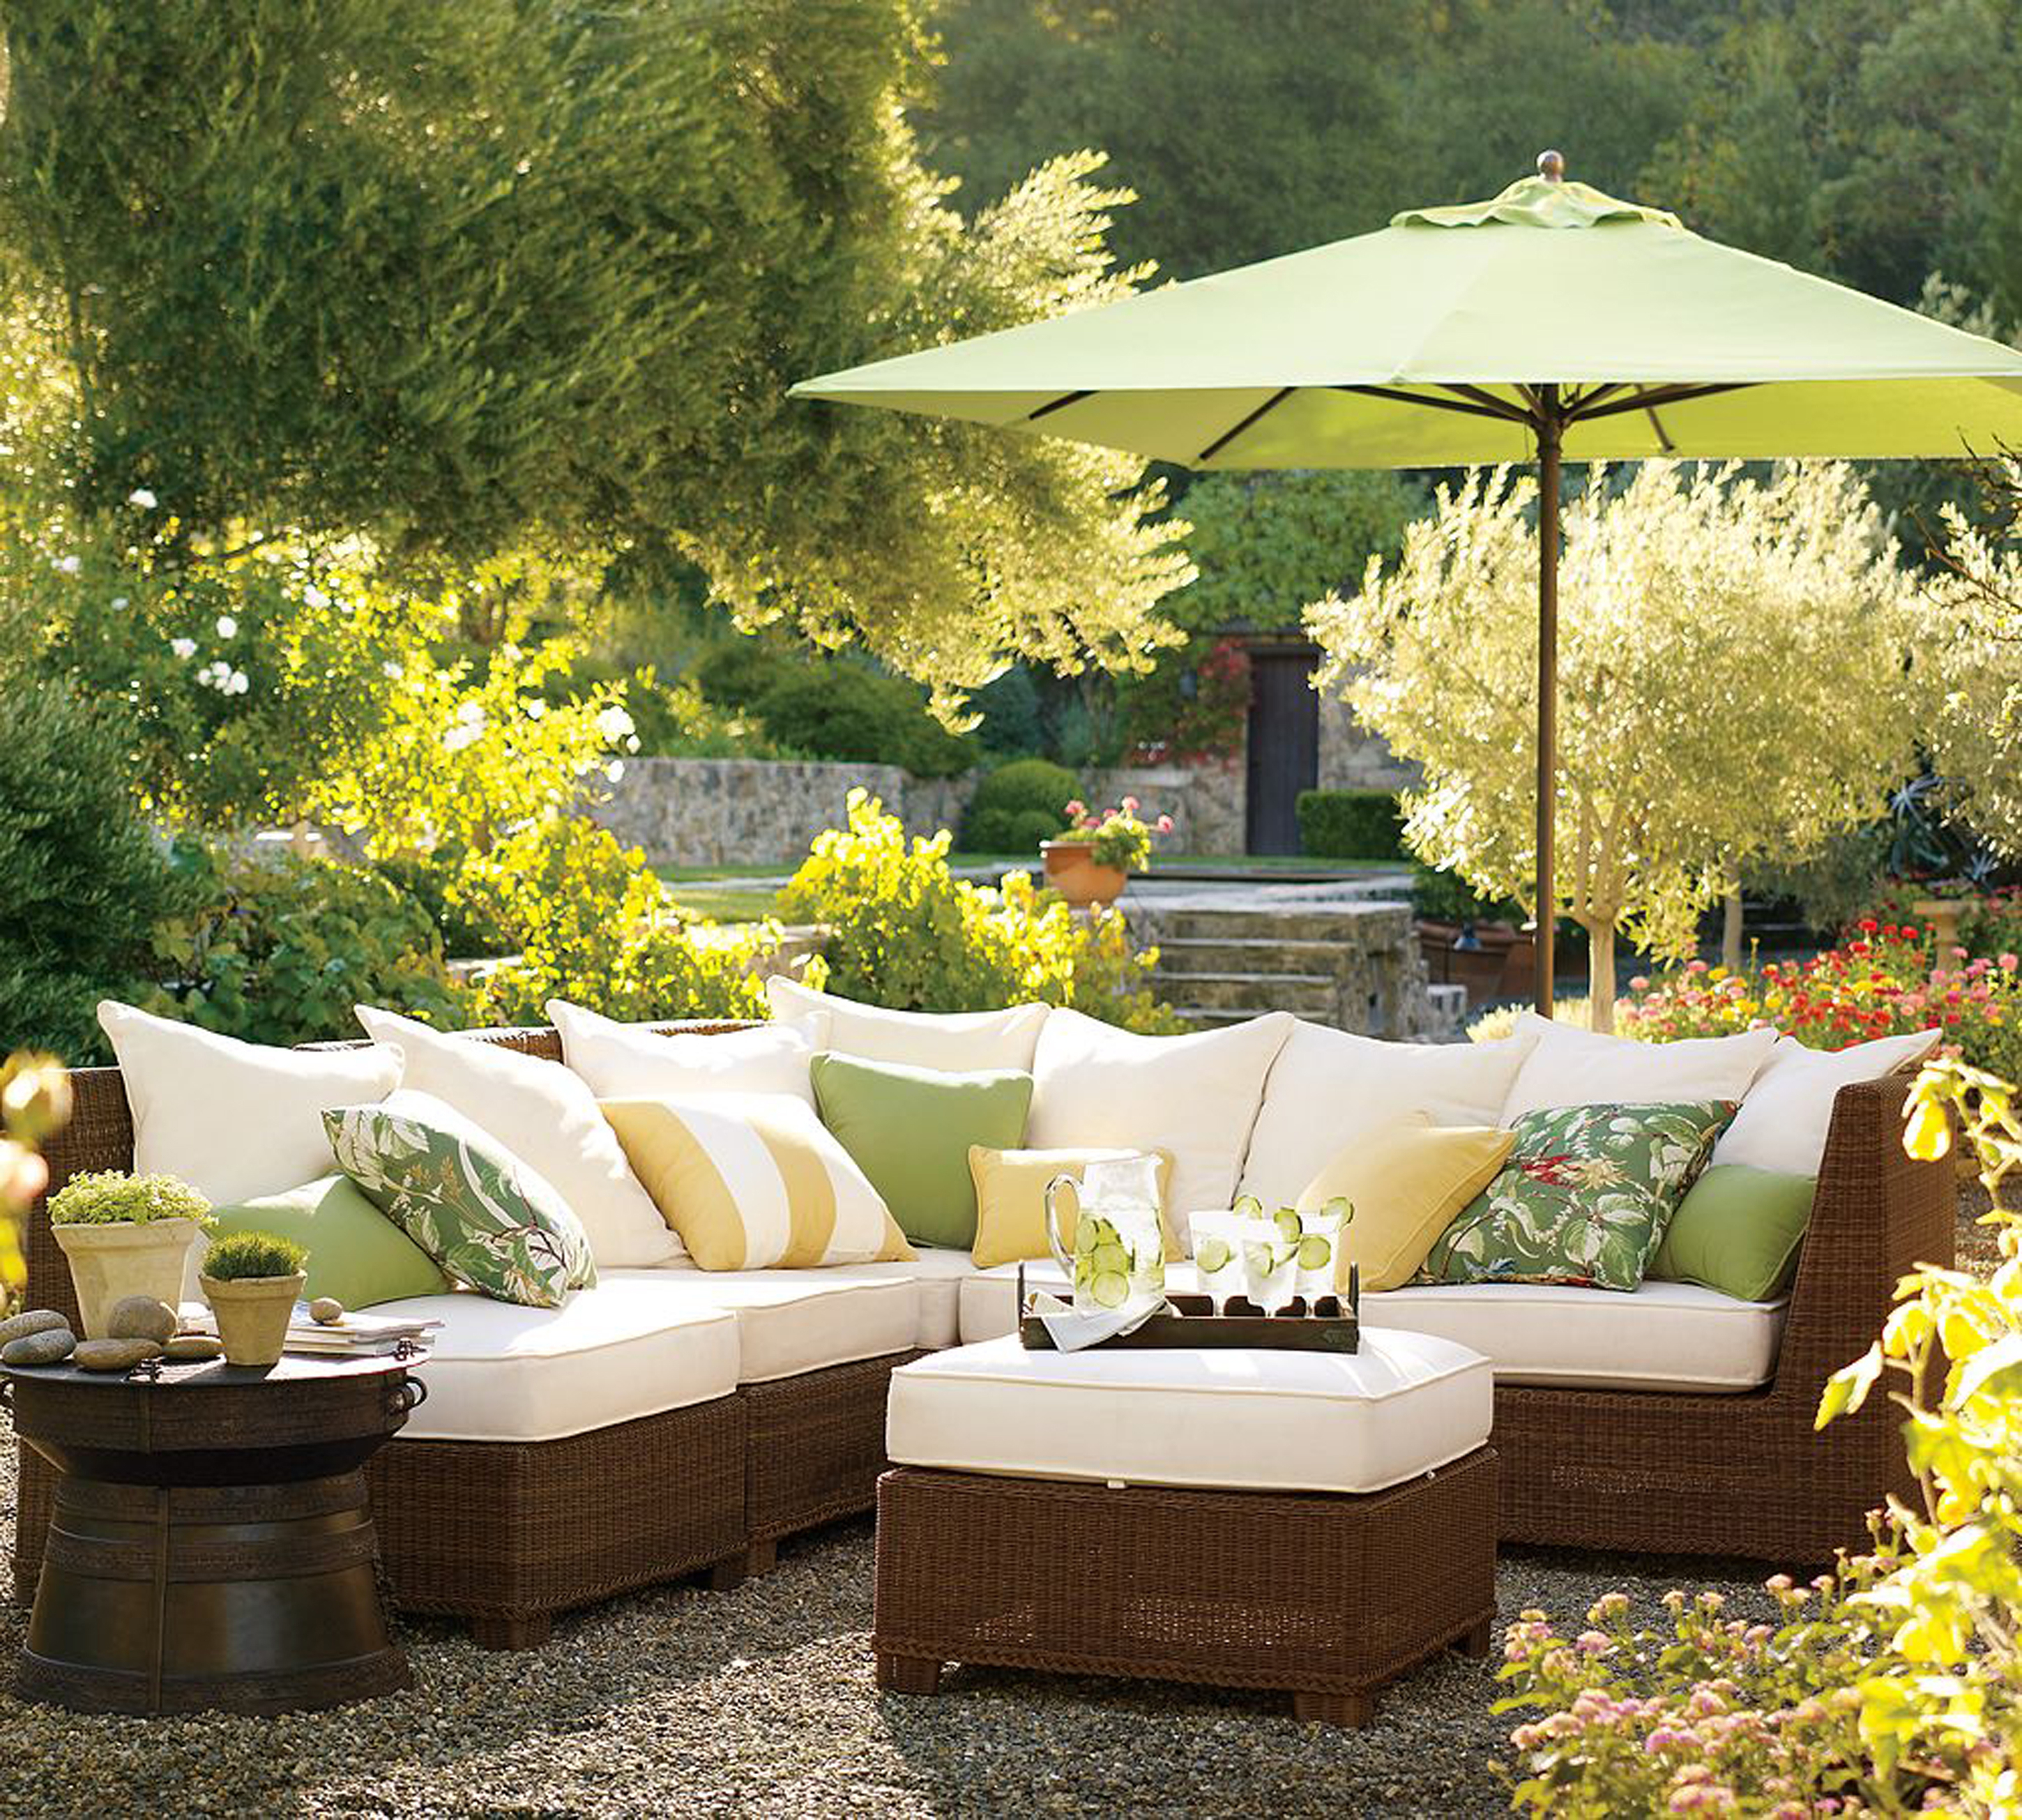 Luxury Modern Outdoor Design Idea With Brown White Sofa With Green Brown Throw Pillows And Light Green Umbrella Beautiful Modern Outdoor Design Ideas (Image 108 of 123)